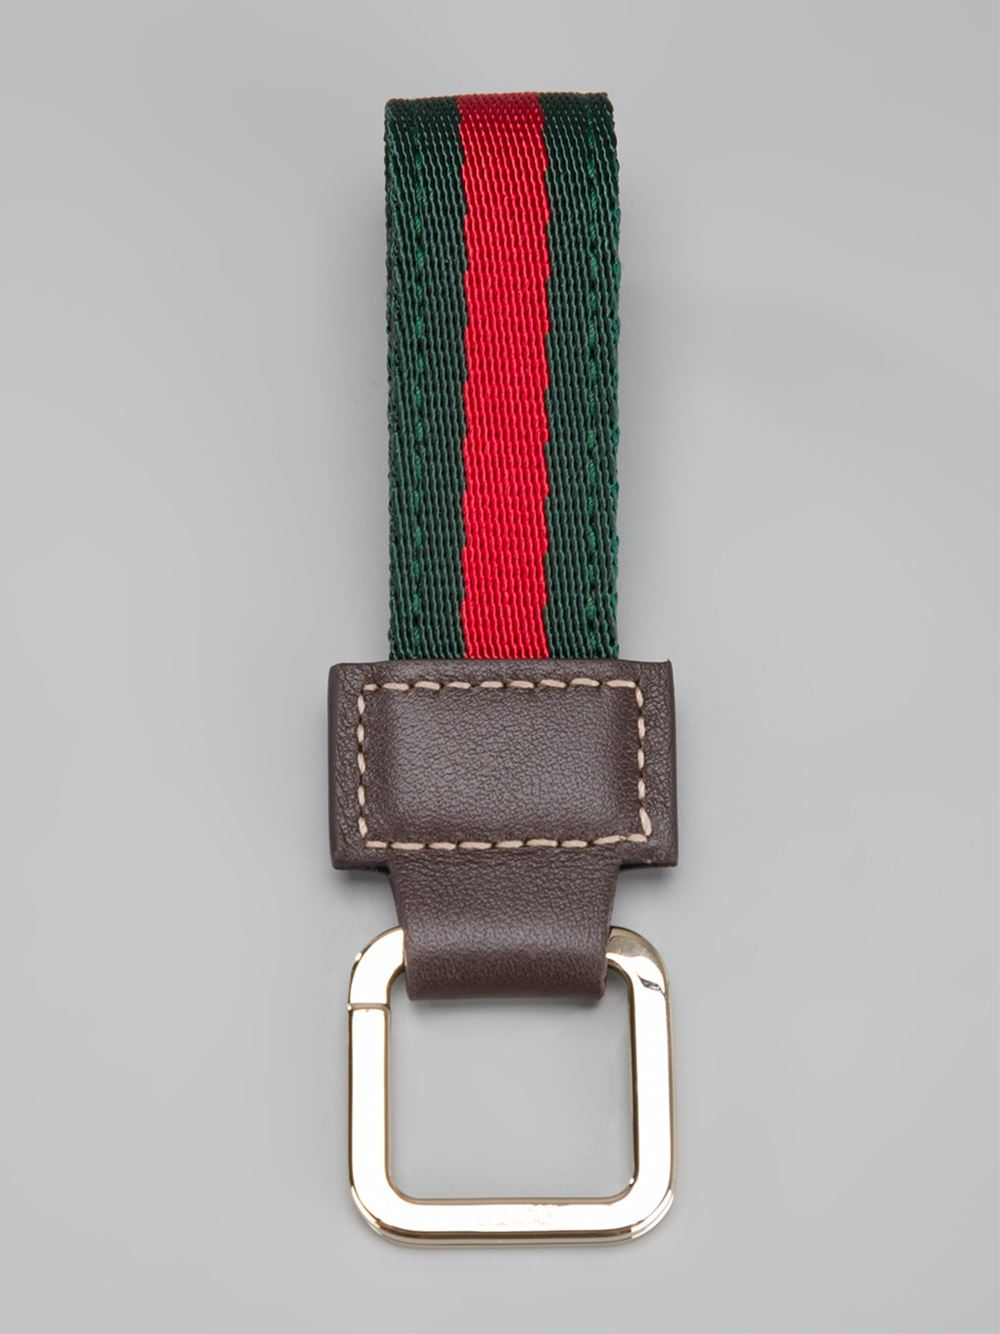 e7897d5a2f0 Lyst - Gucci Striped Loop Key Ring in Green for Men